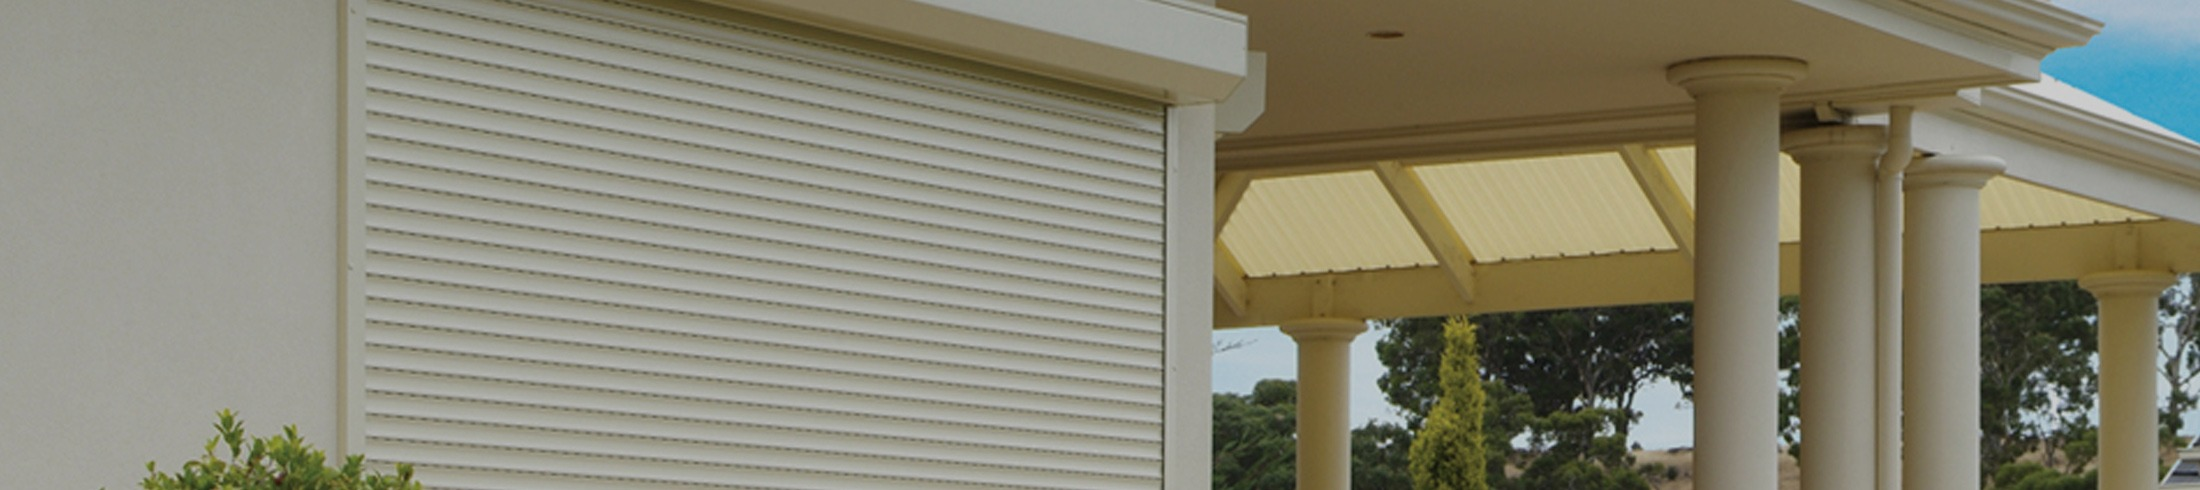 outdoor shutters powersmart 01